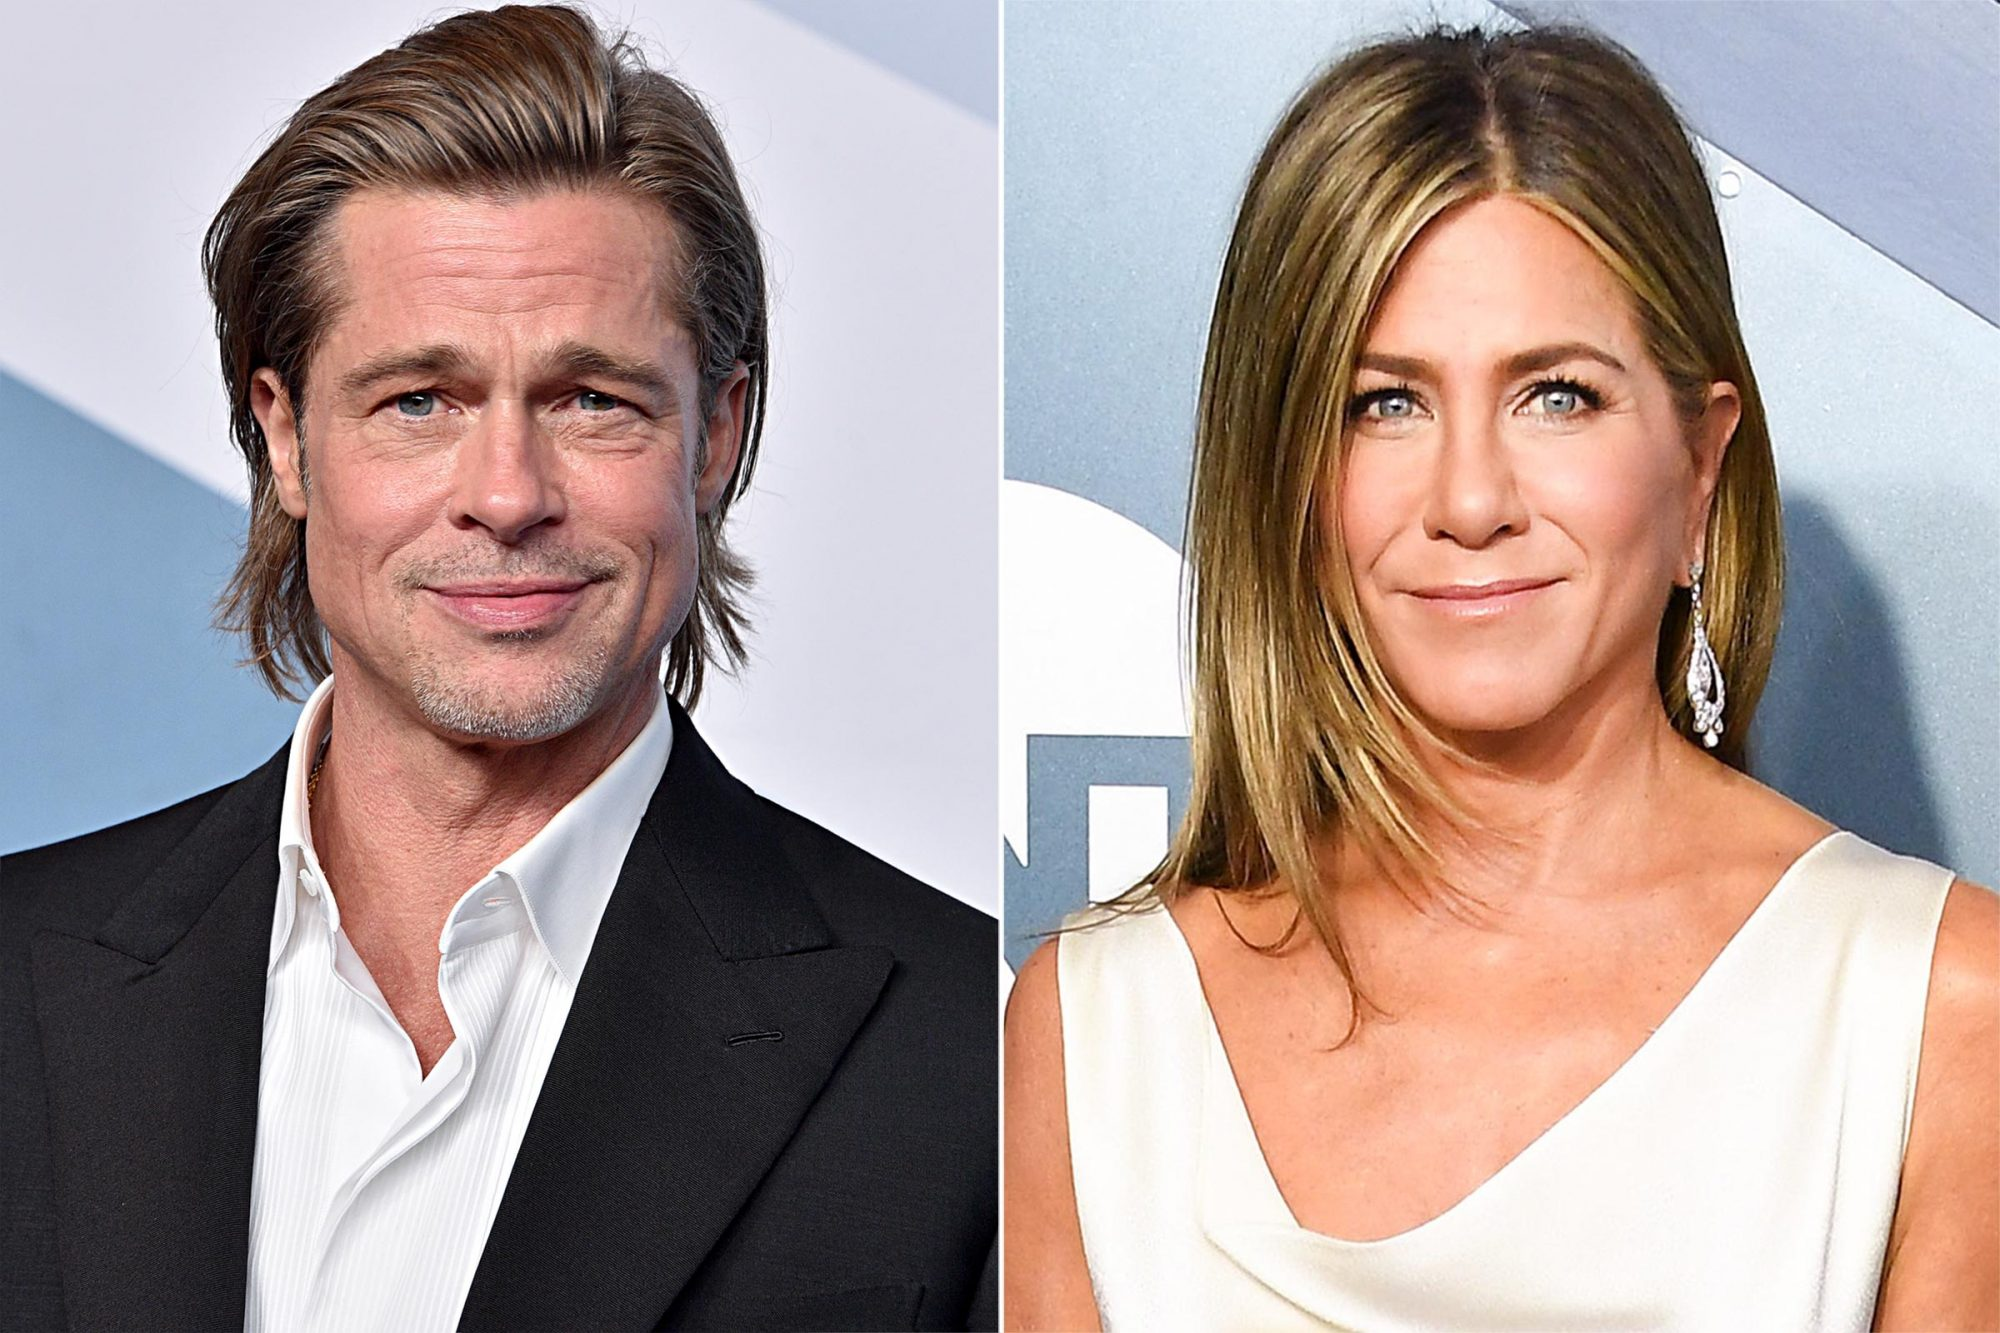 Brad Pitt / Jennifer Aniston